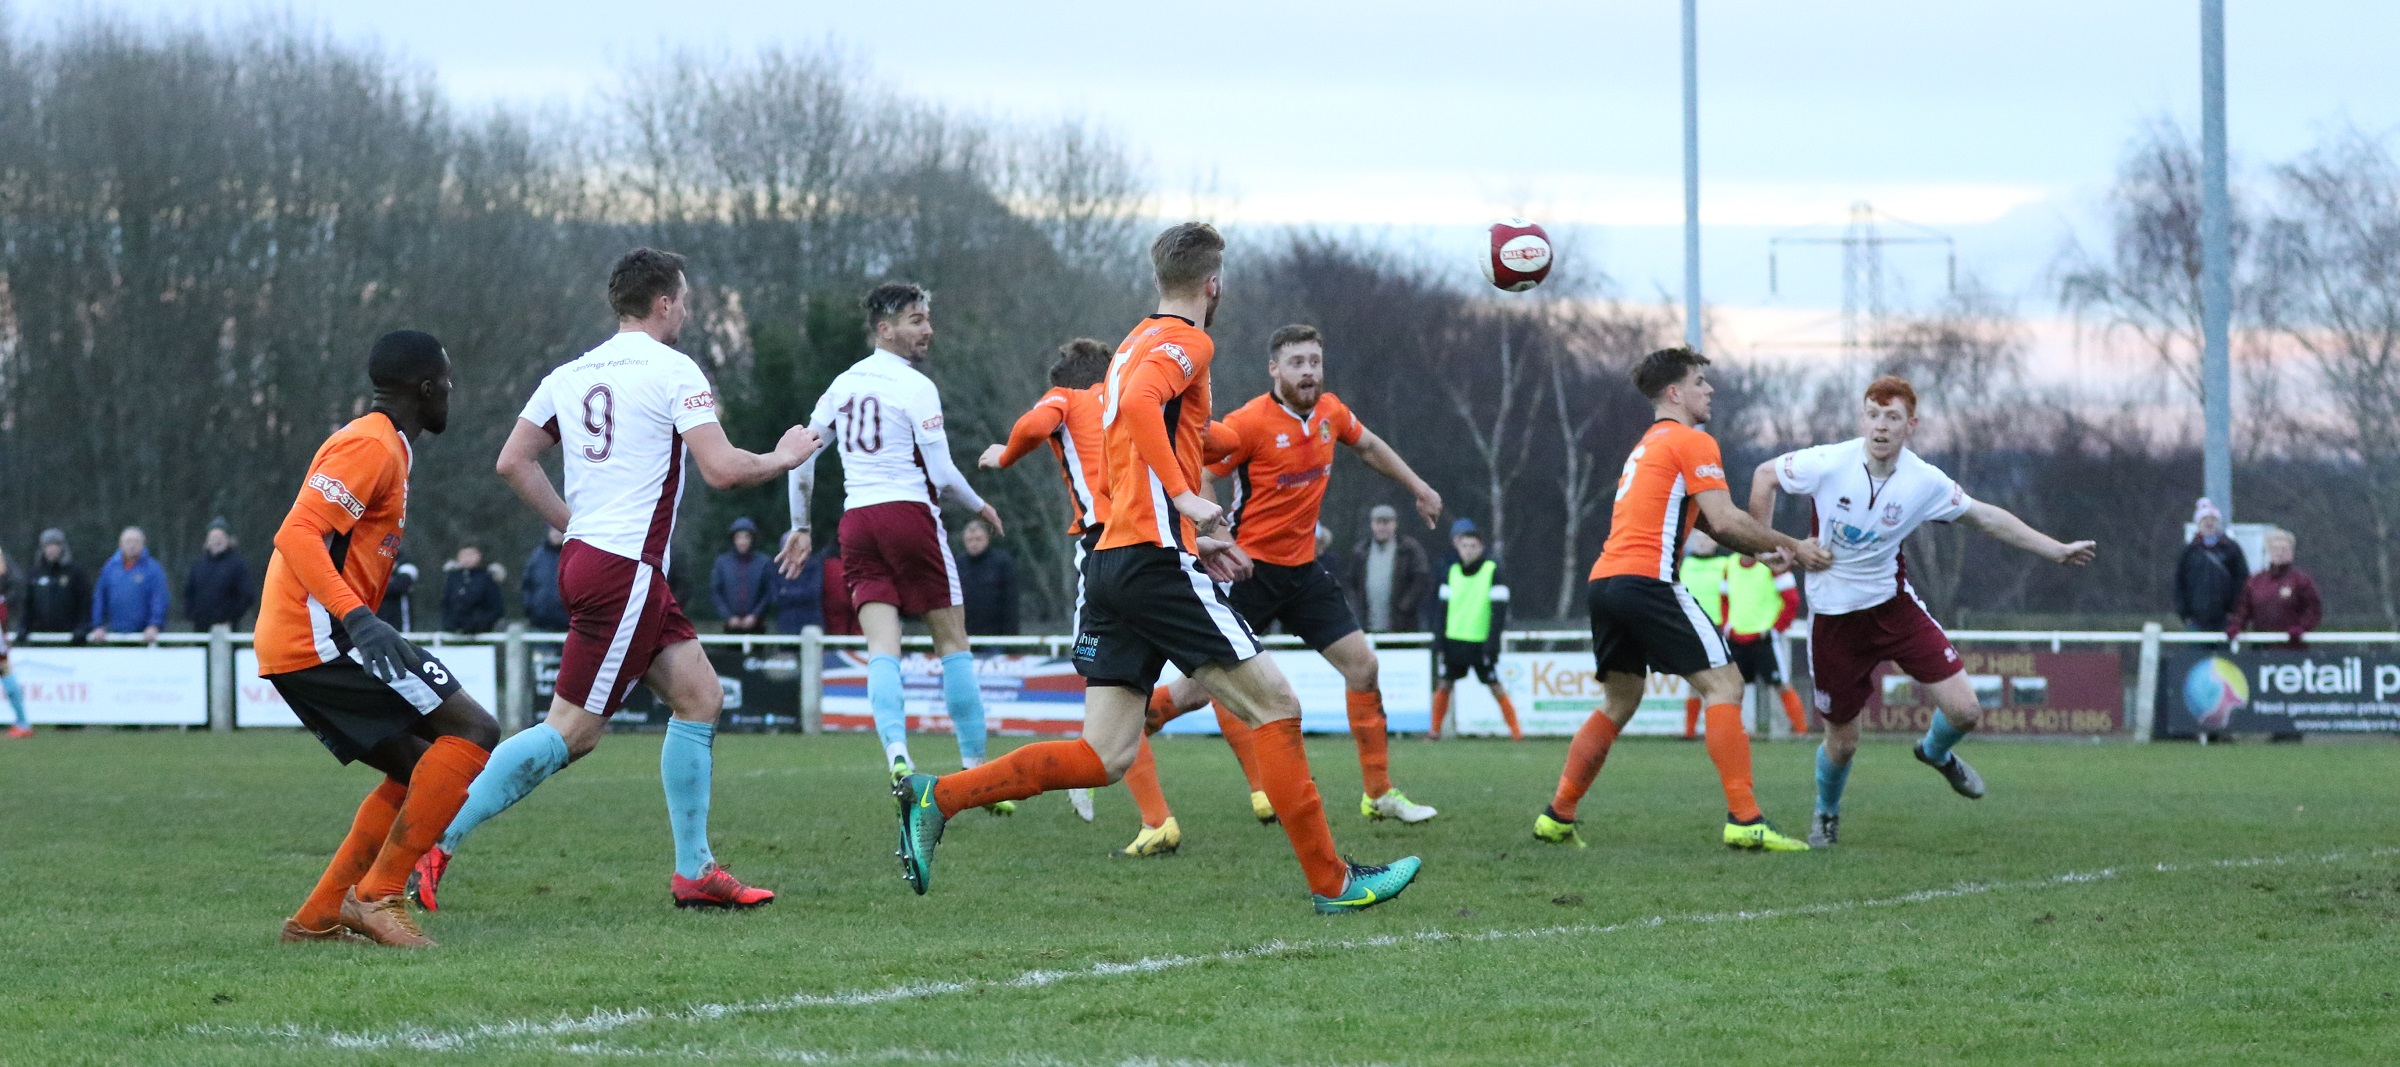 Brighouse Town 1-5 South Shields: Five-star win for Mariners